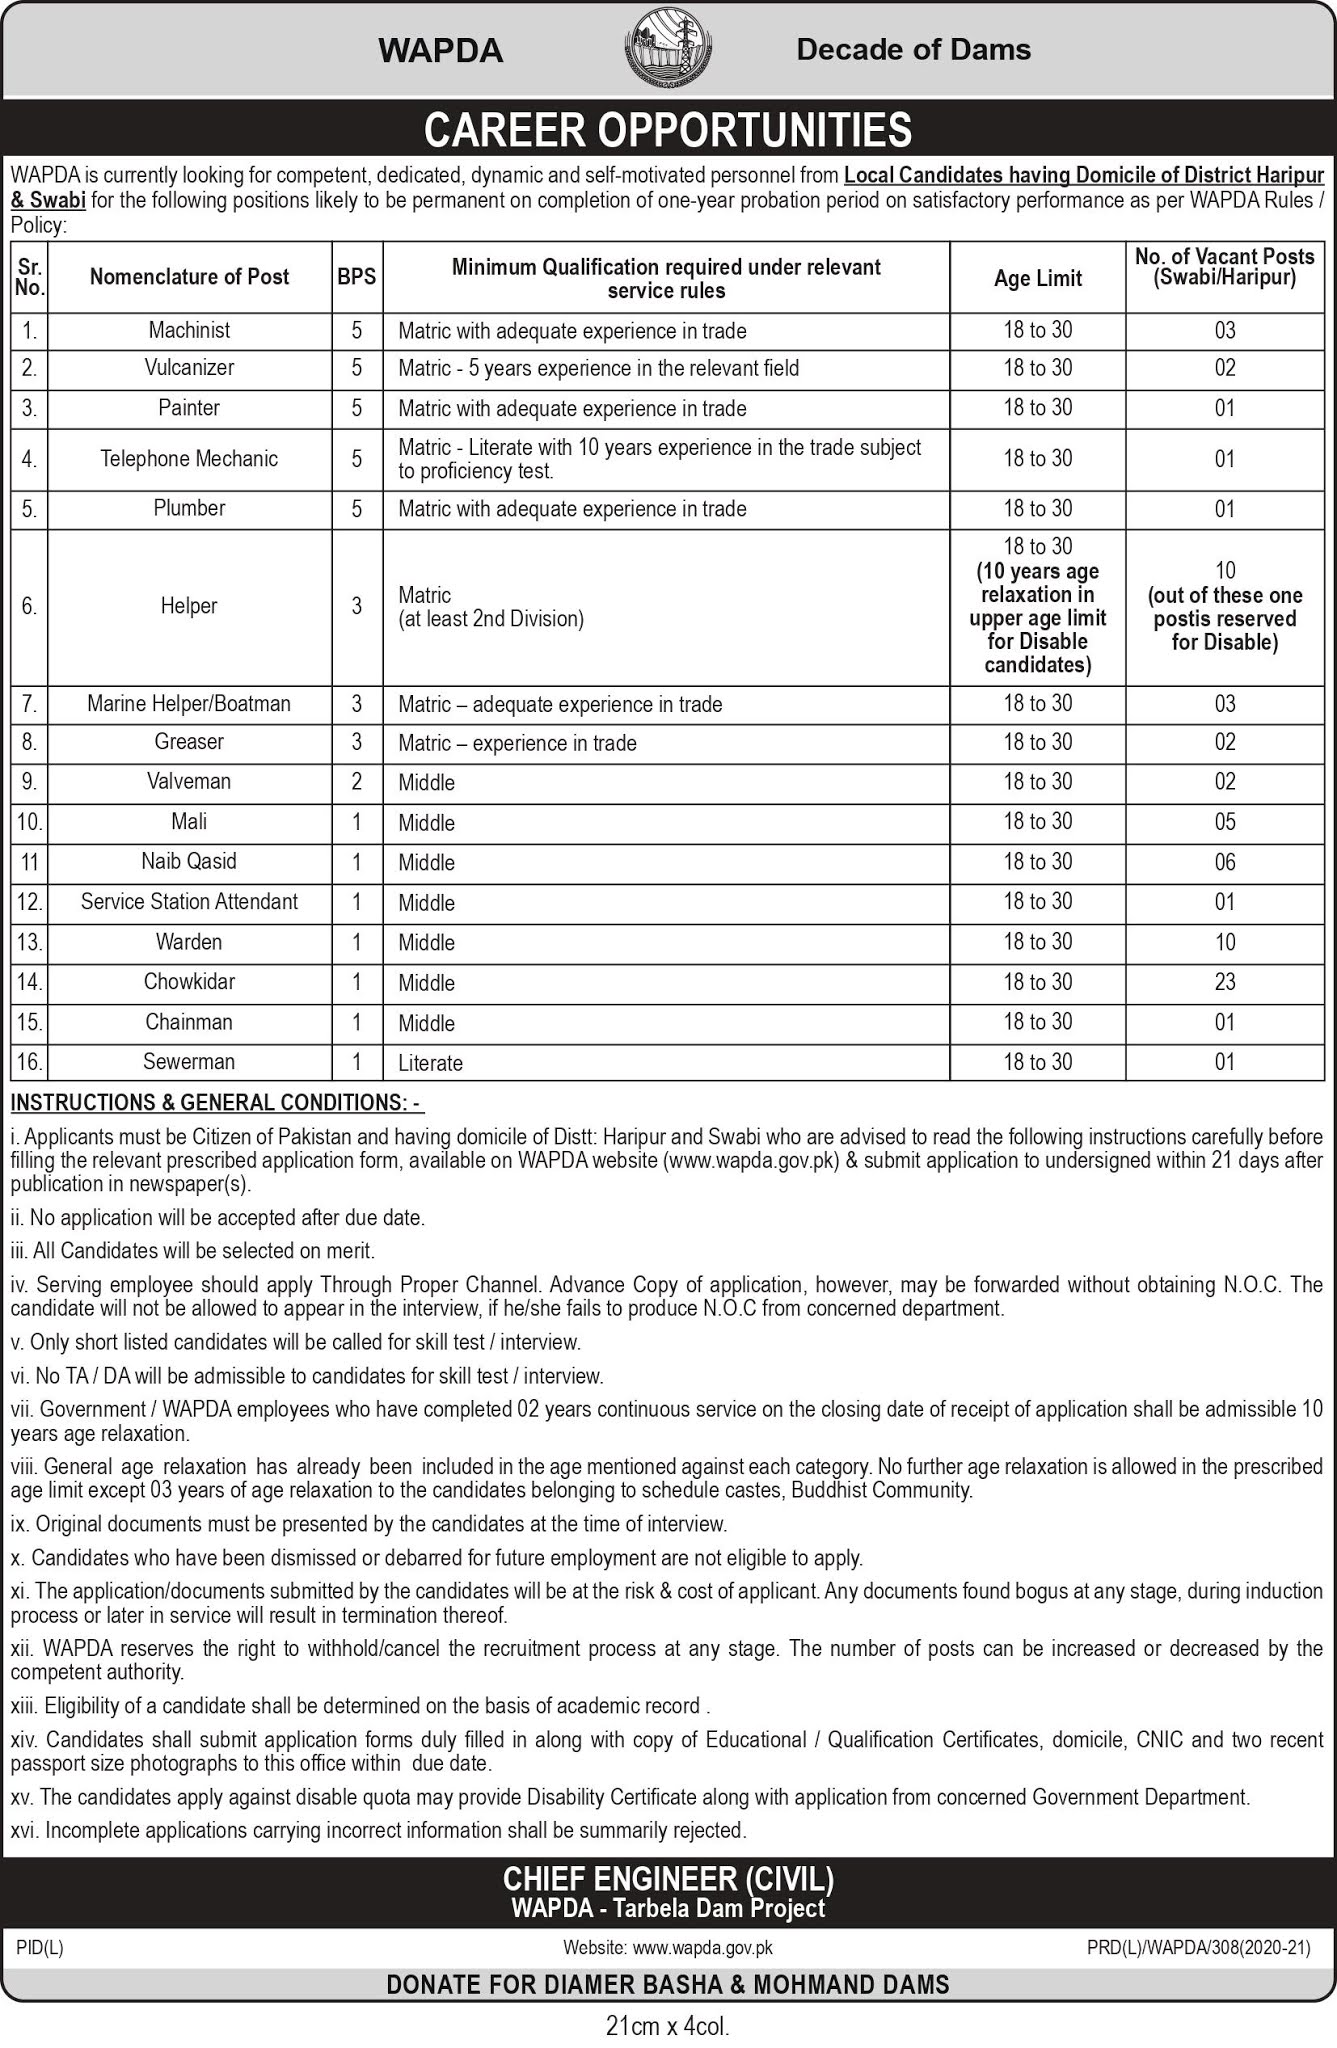 Water and Power Development Authority (WAPDA)   Latest Jobs 2021  Download Application Form  Latest jobs Advertisement